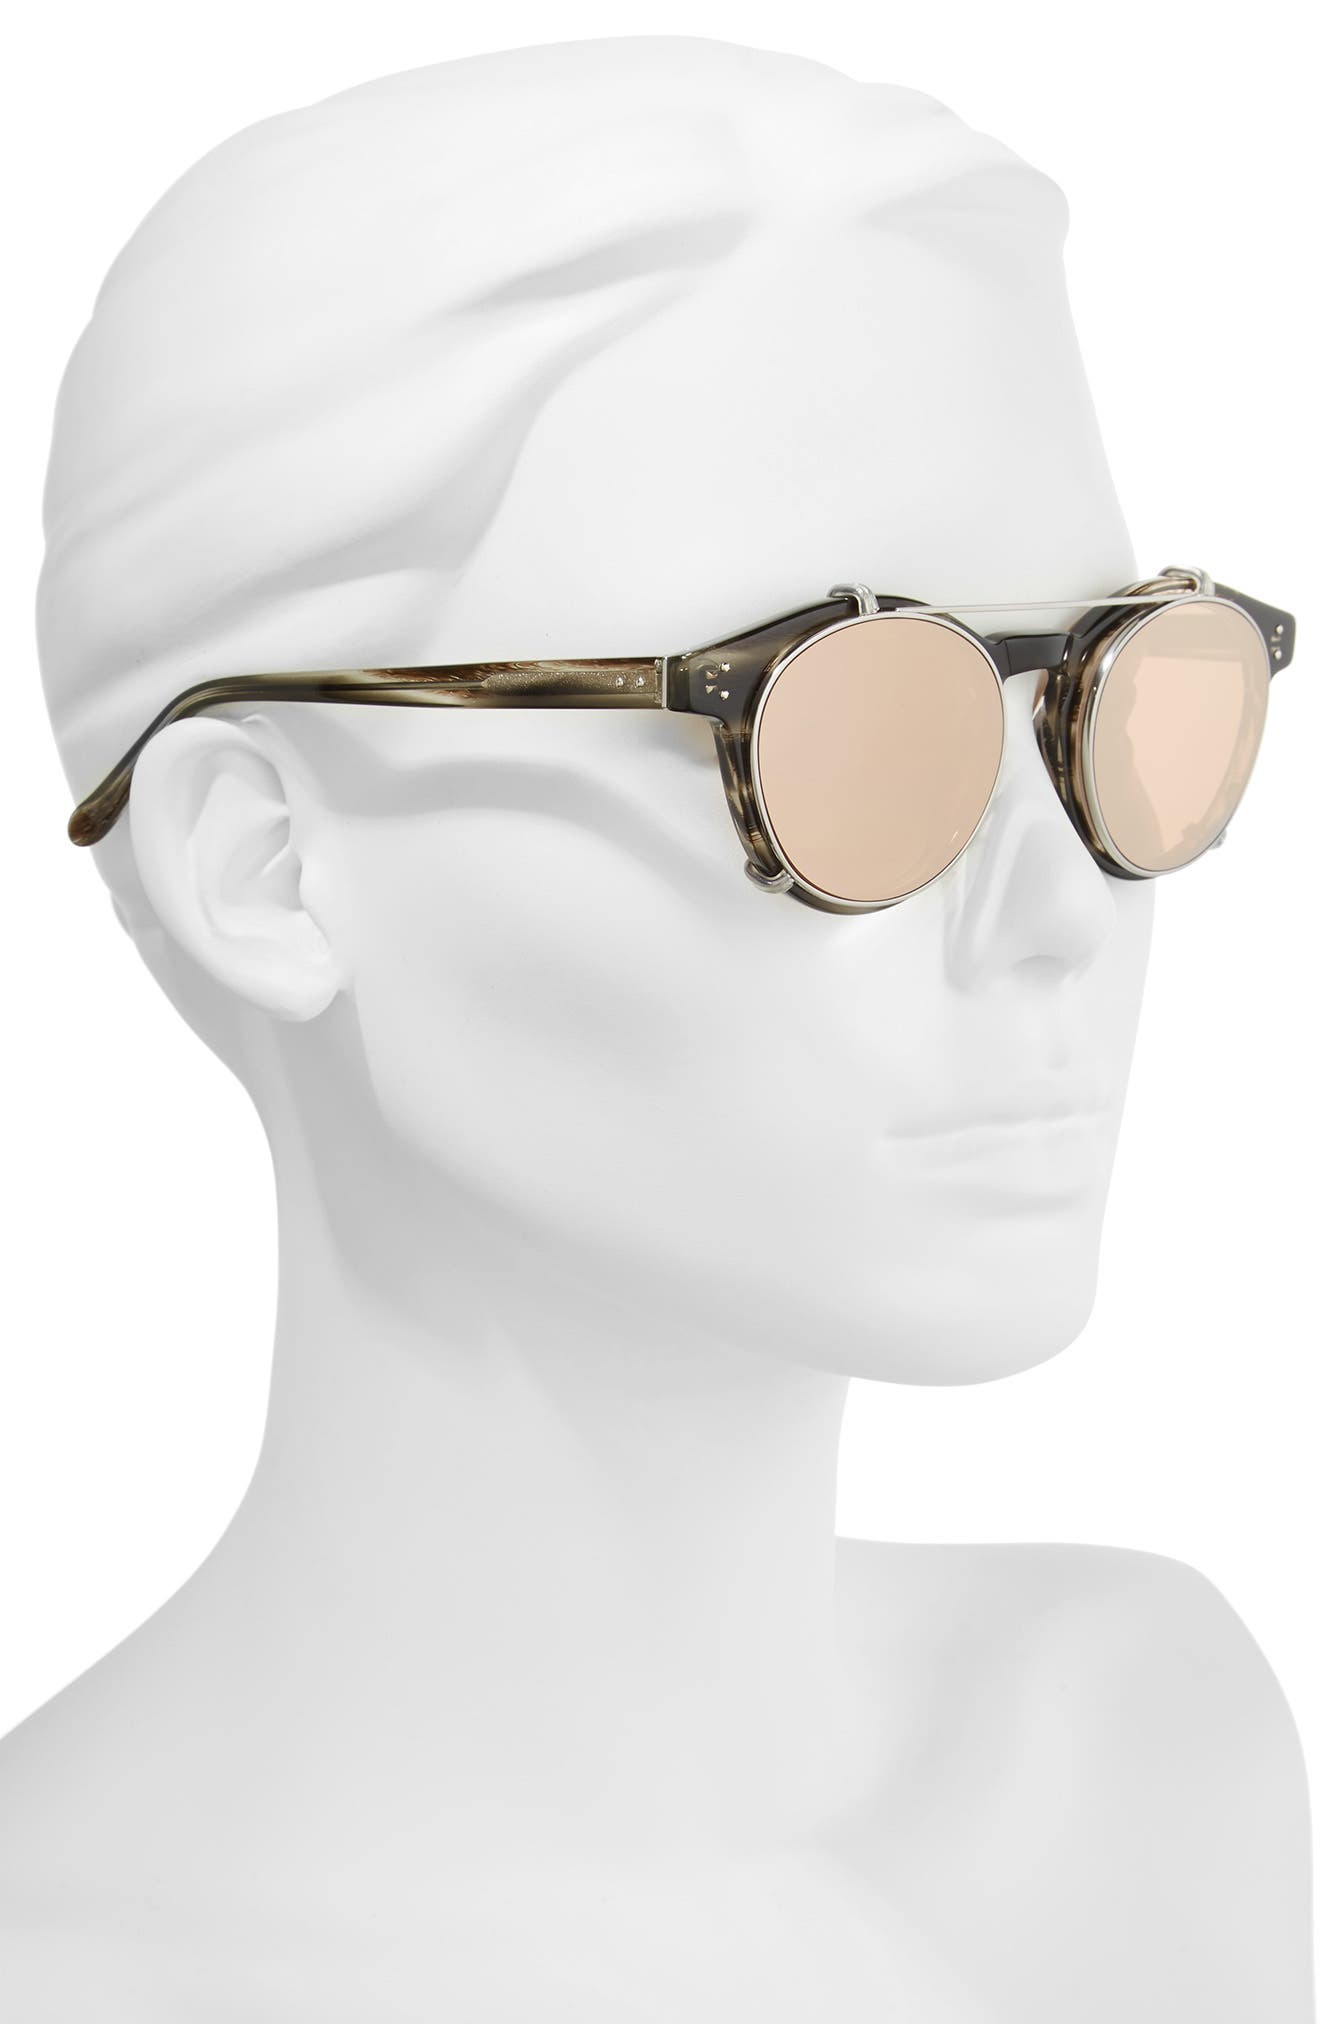 47mm Optical Glasses with Clip-On 18 Karat Rose Gold Trim Sunglasses,                             Alternate thumbnail 3, color,